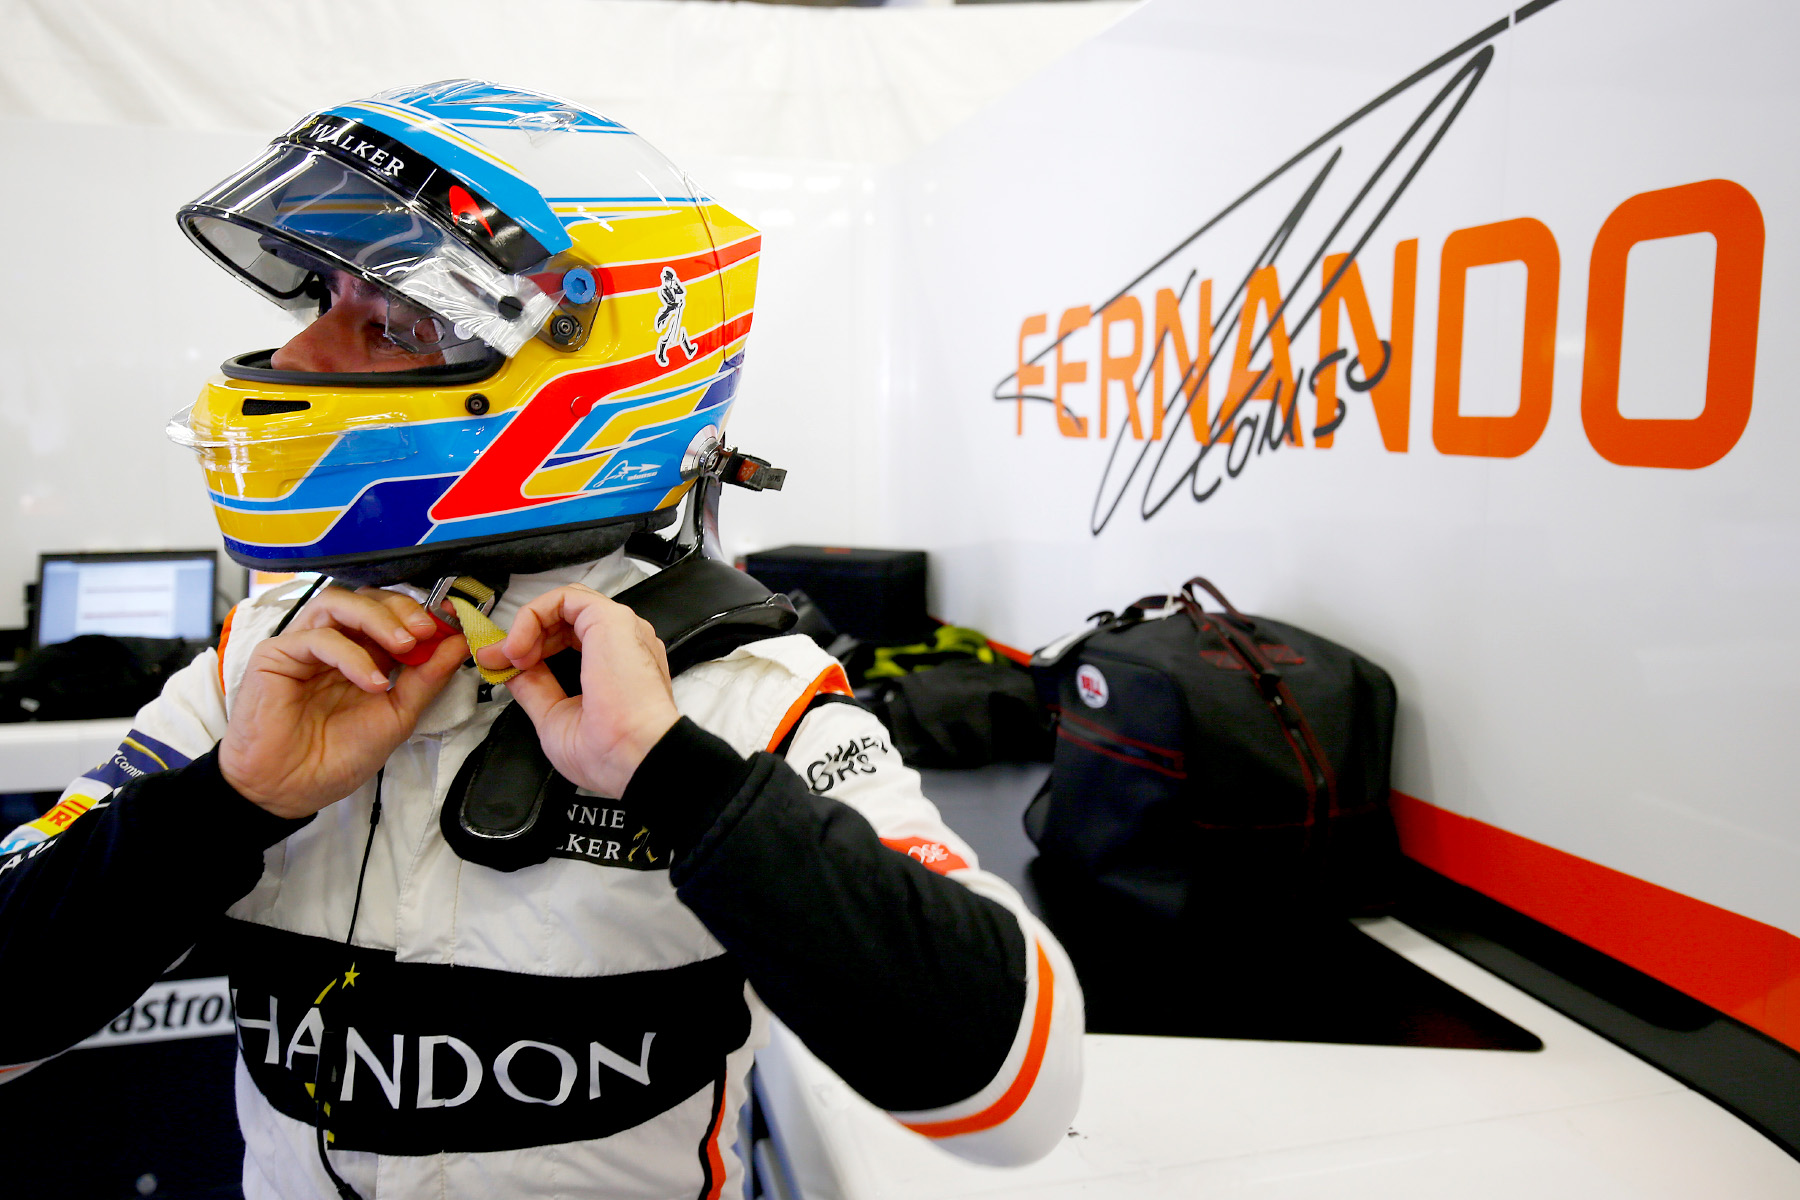 Fernando Alonso in his garage at the Hungarian Grand Prix.